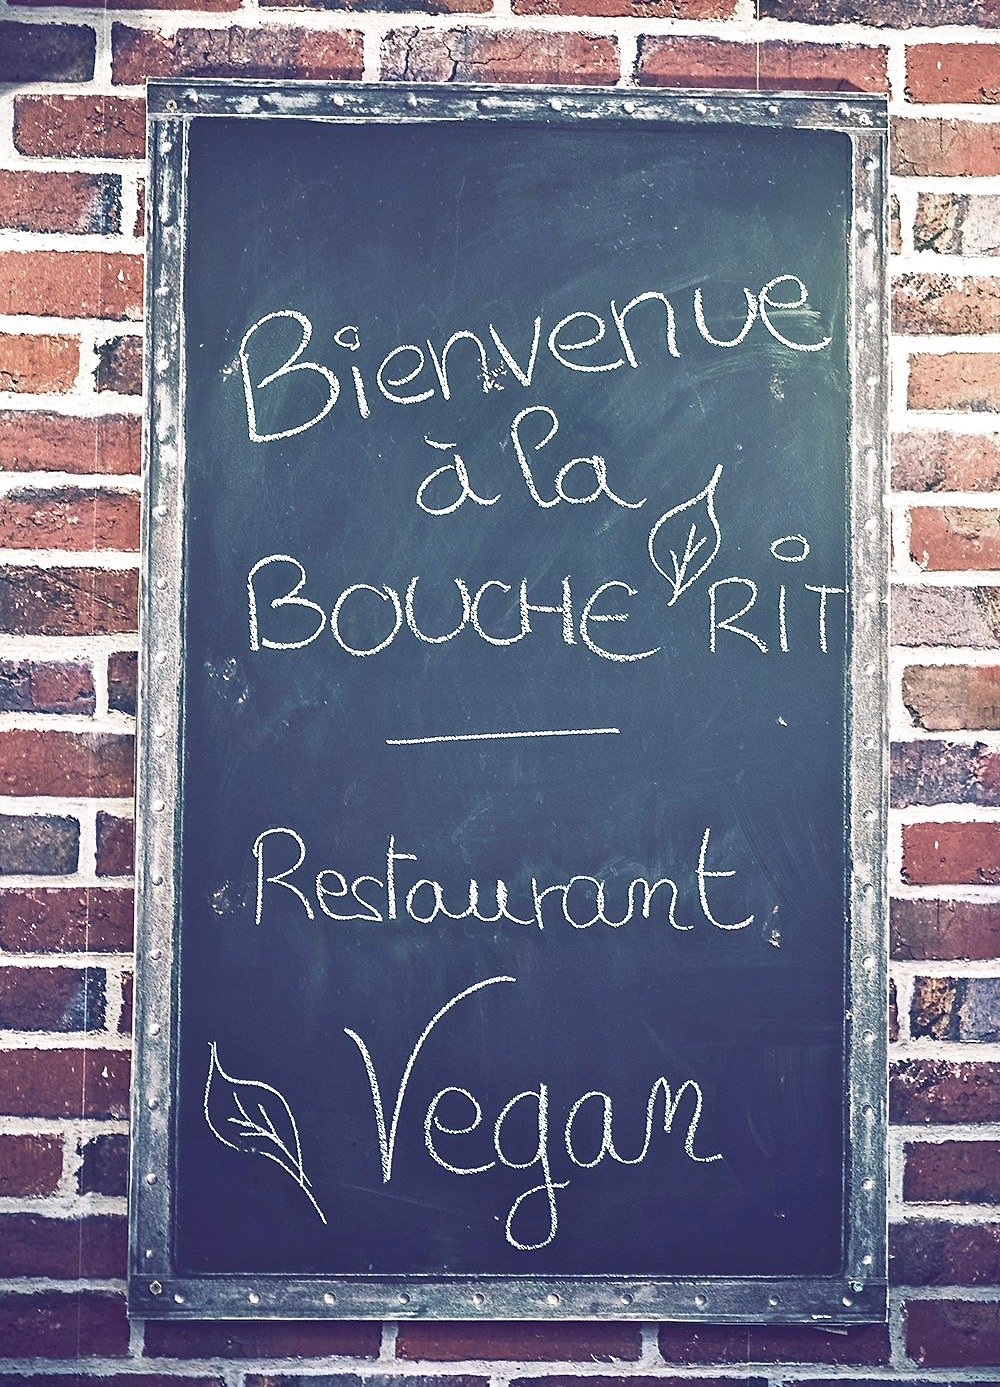 restaurant vegan grenoble